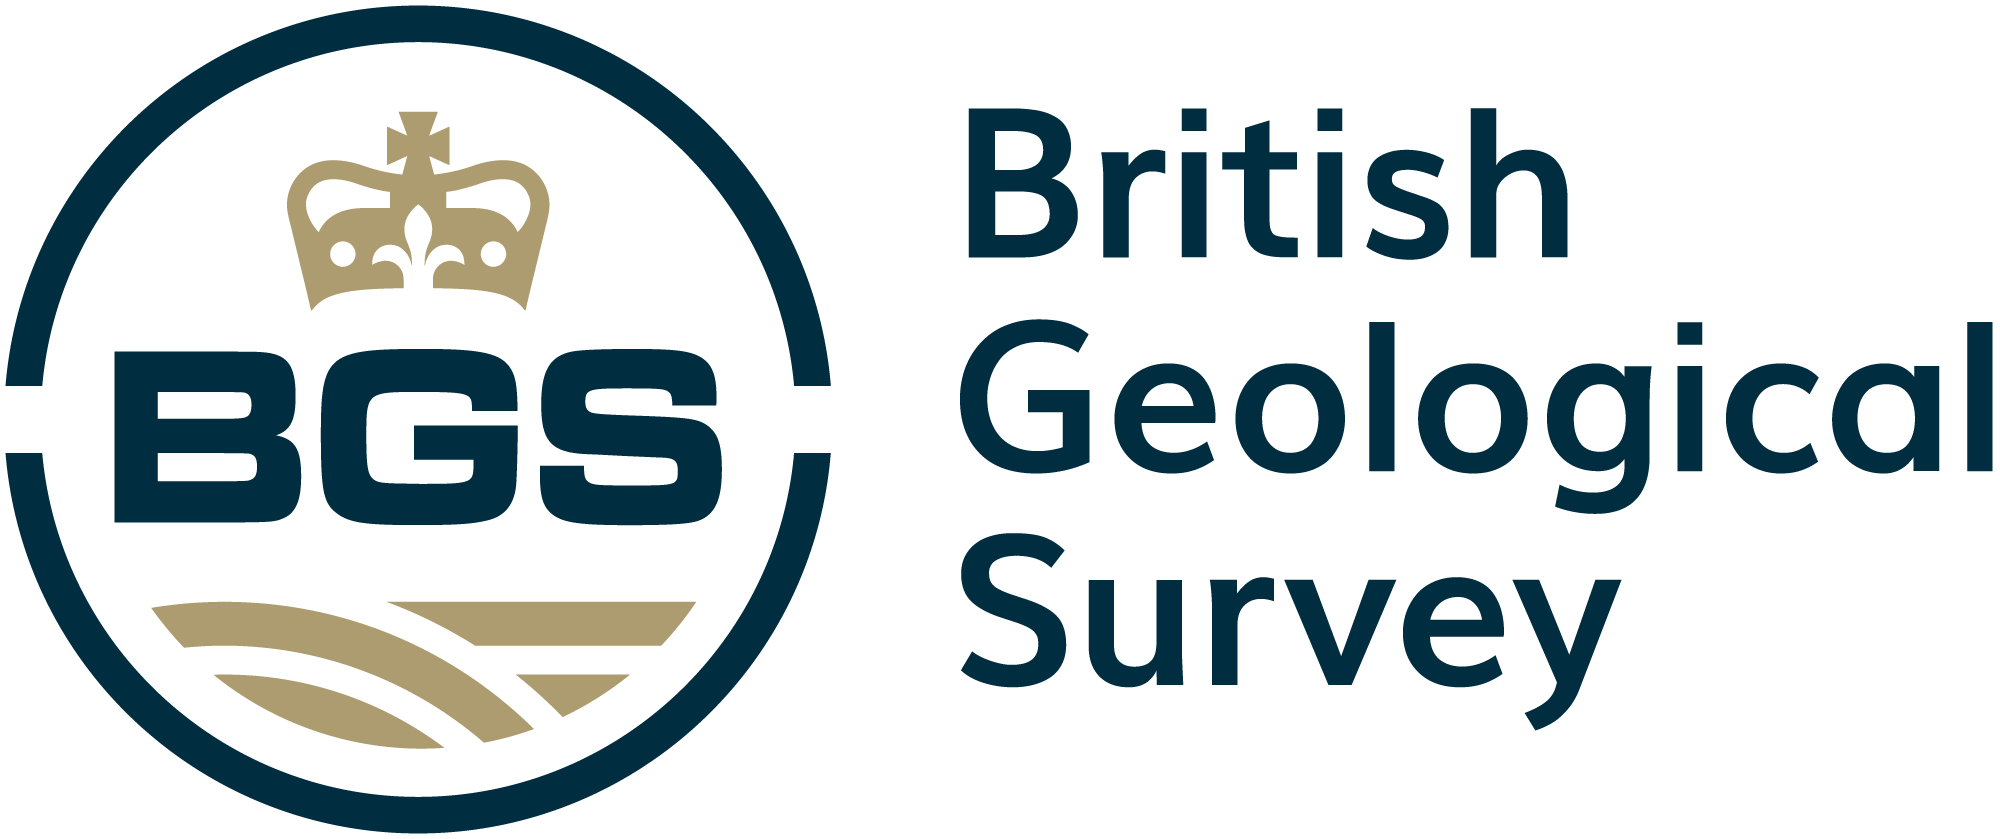 New Logo and Identity for British Geological Survey by Threerooms